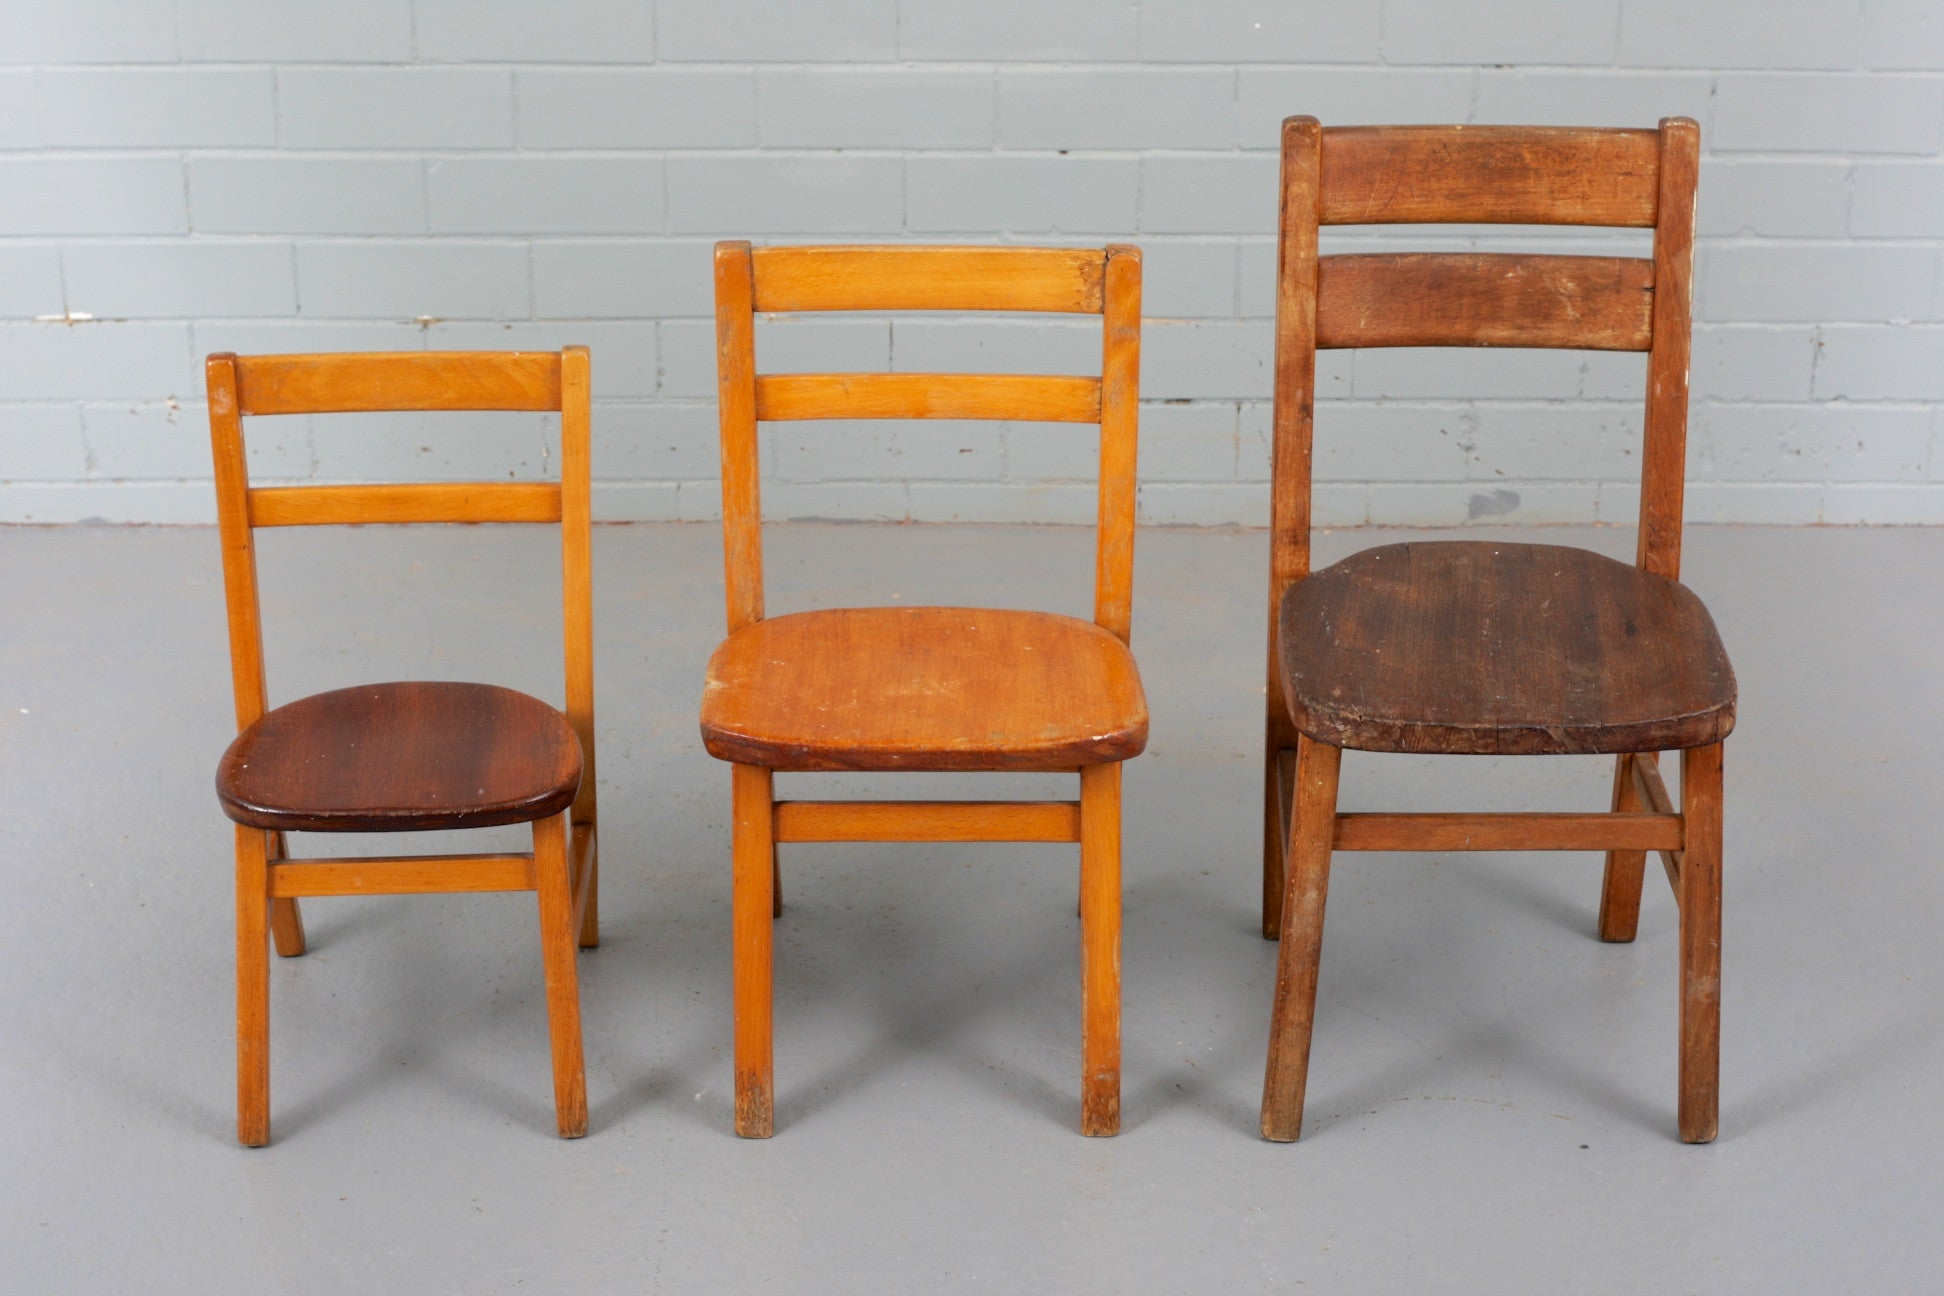 Merveilleux Vintage Wooden Childrenu0027s Chairs Available To Buy At Industrious Interiors,  An Online Vintage Furniture And